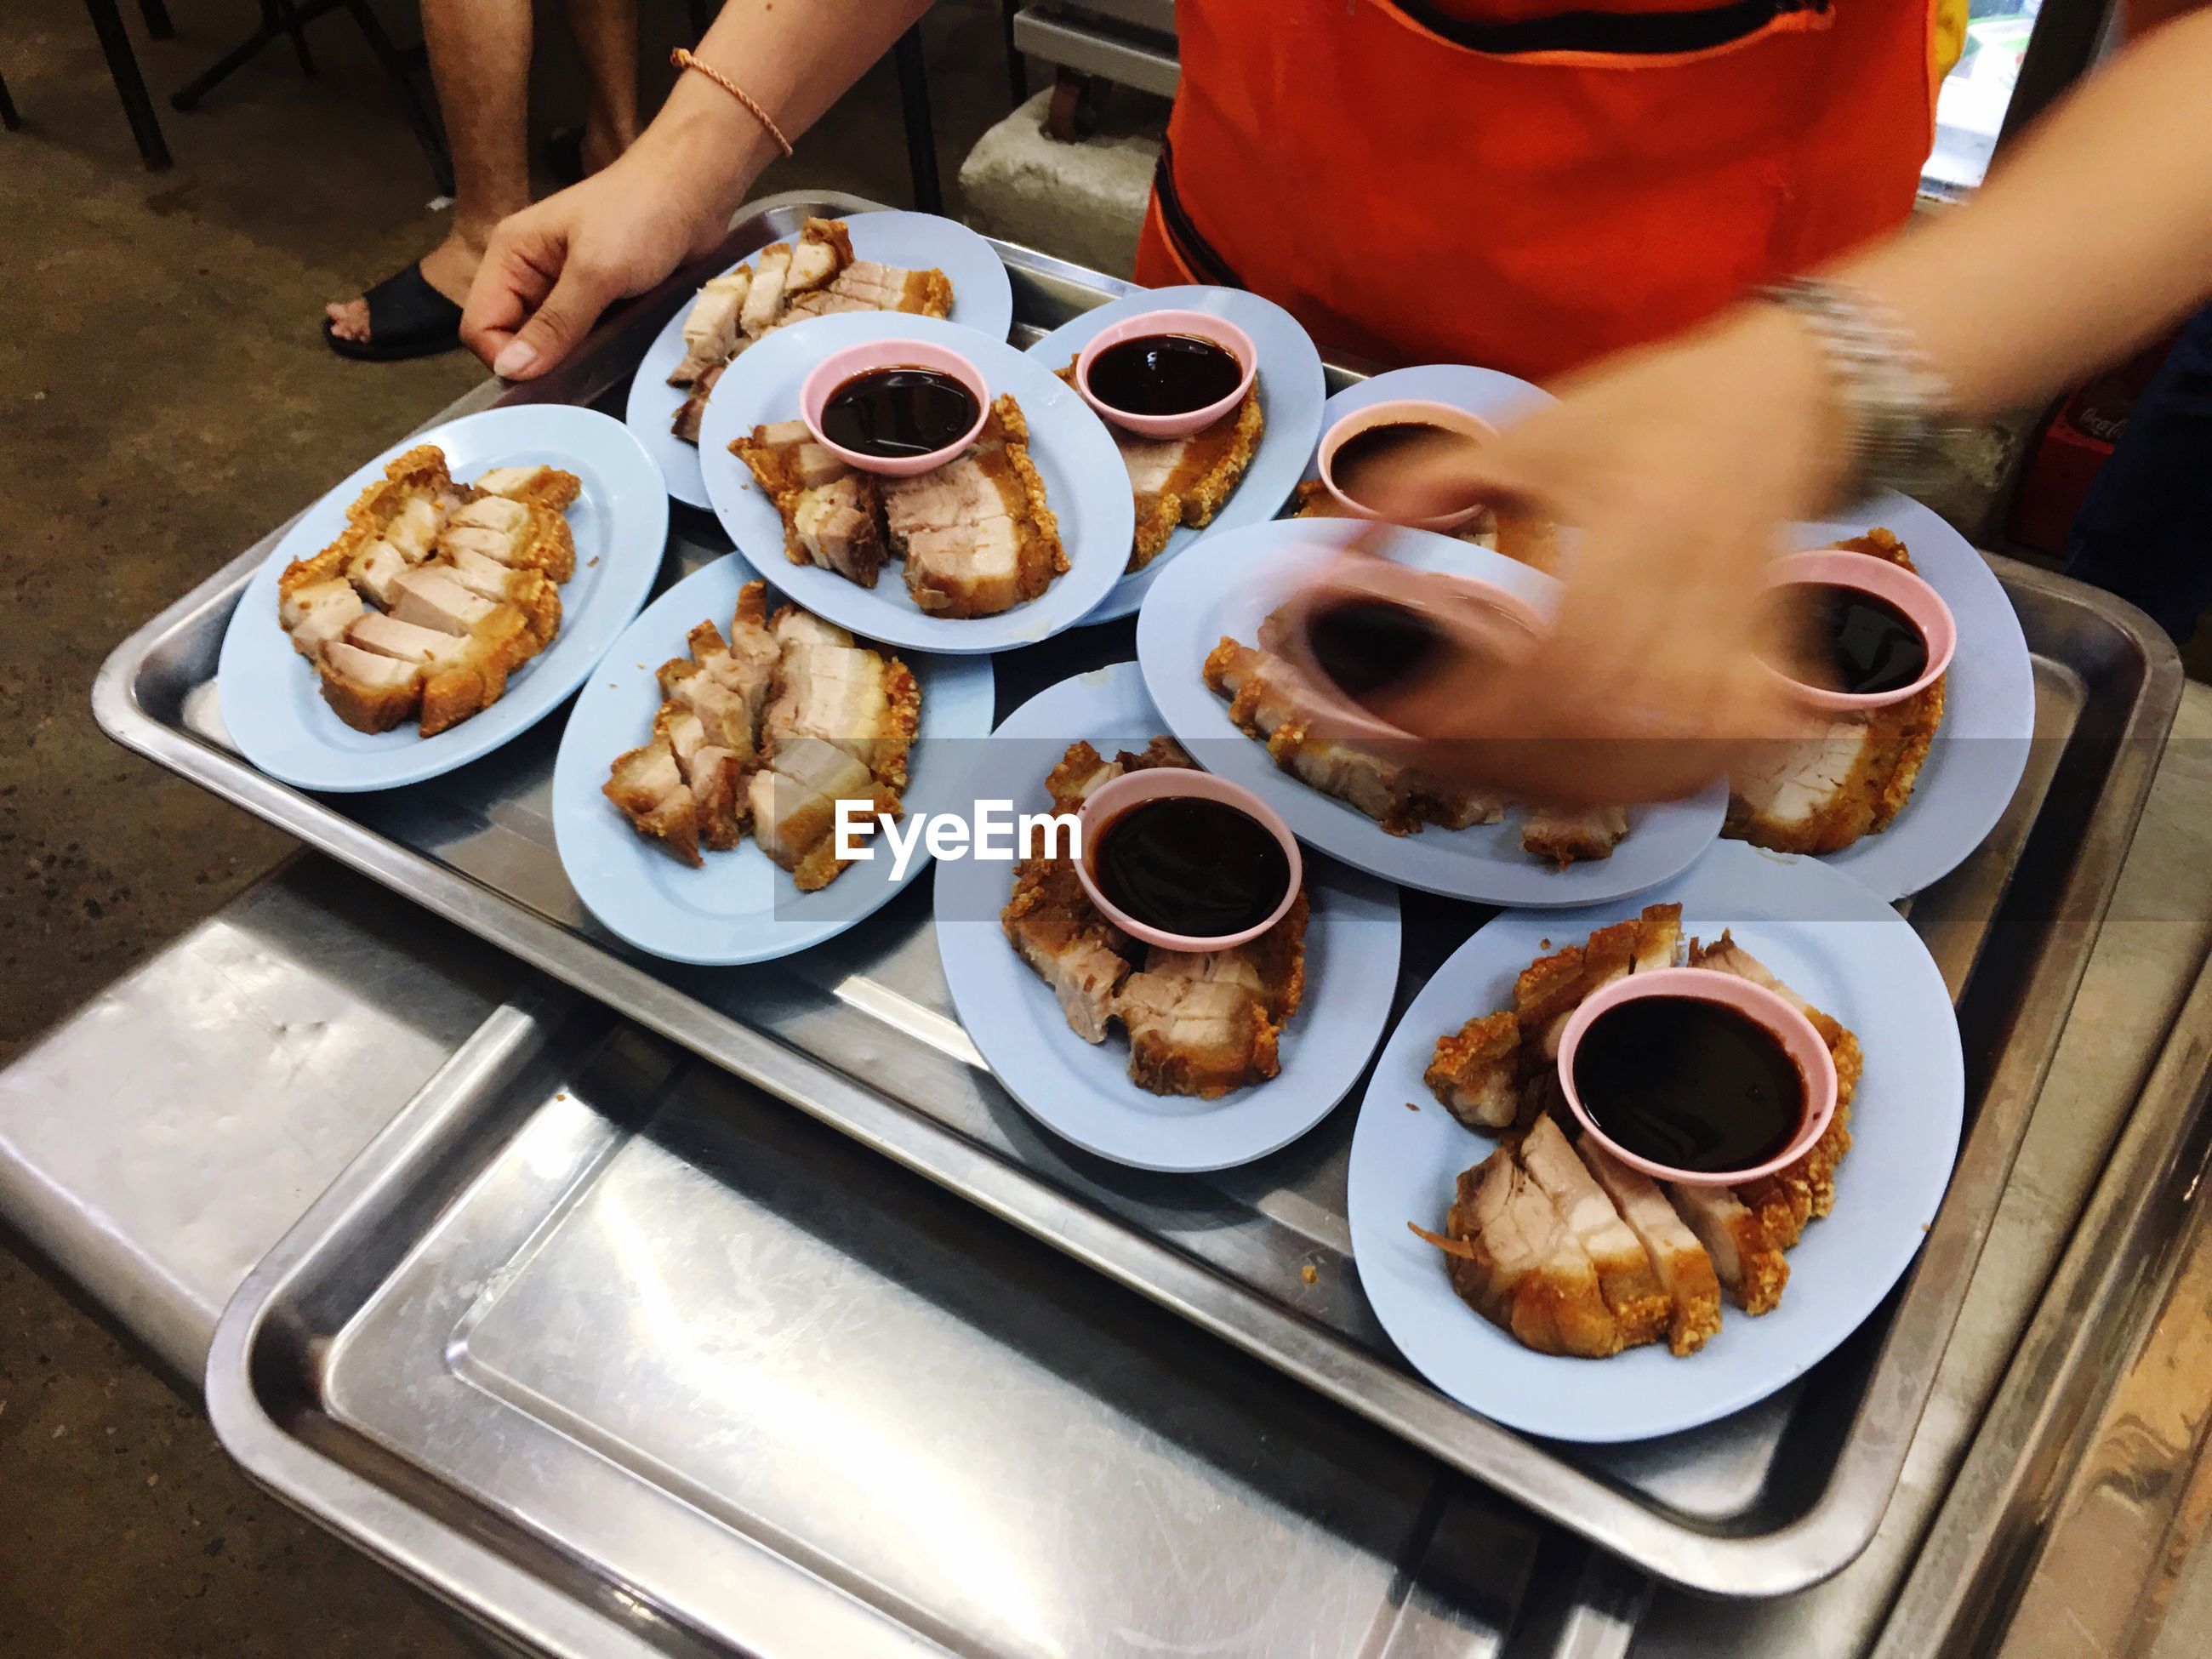 Midsection of waiter holding food plates in tray